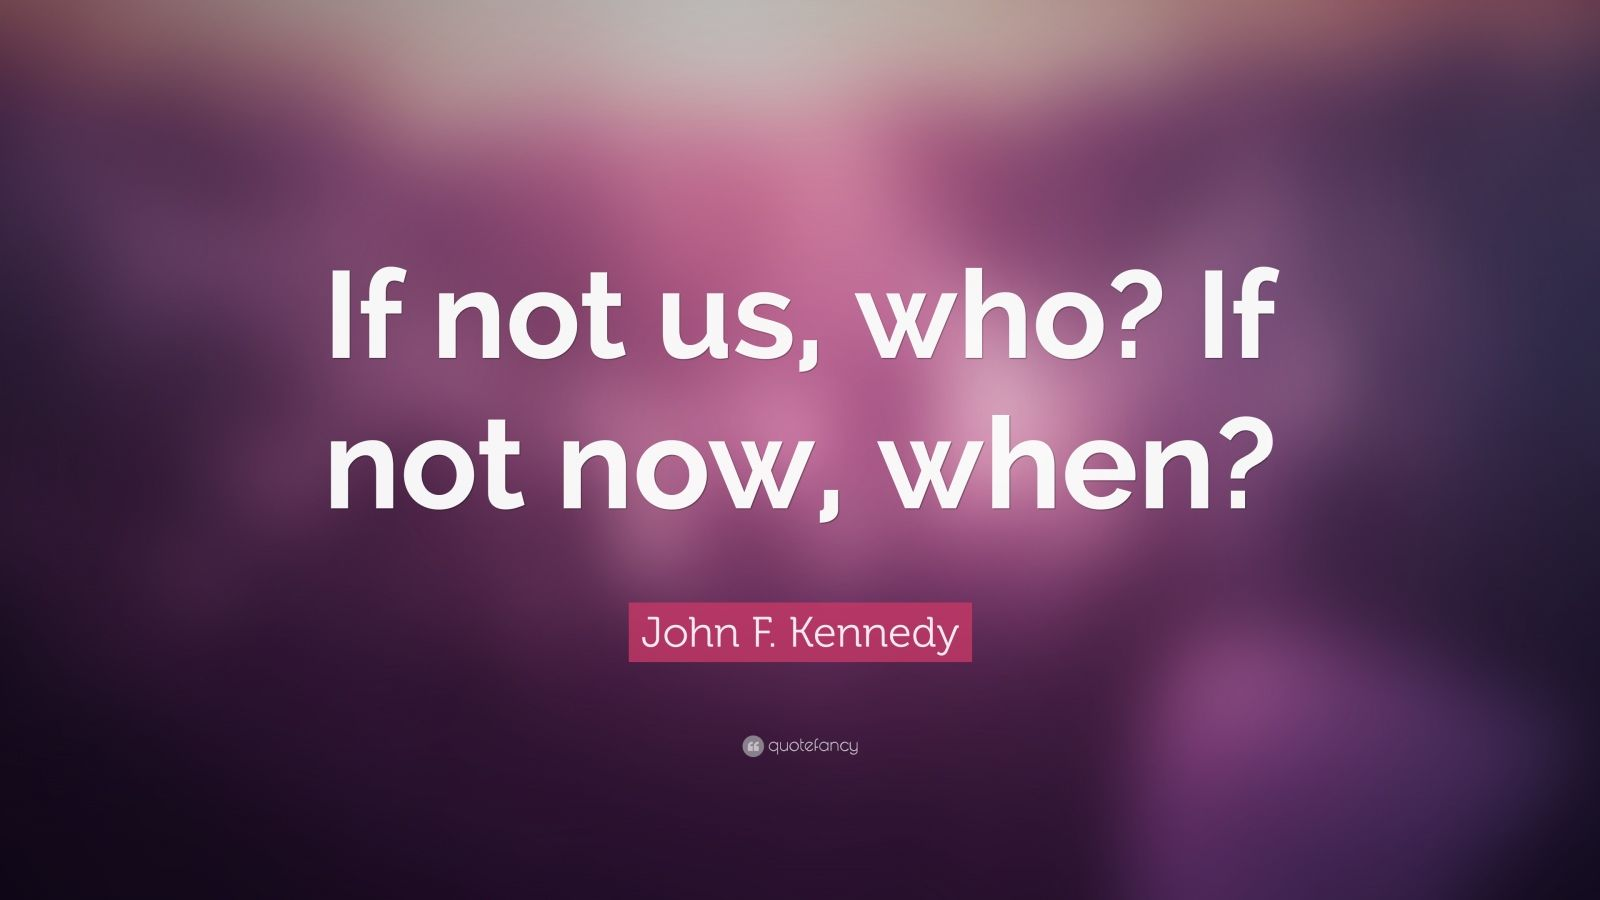 Bill Gates Quotes On Success Wallpaper John F Kennedy Quote If Not Us Who If Not Now When